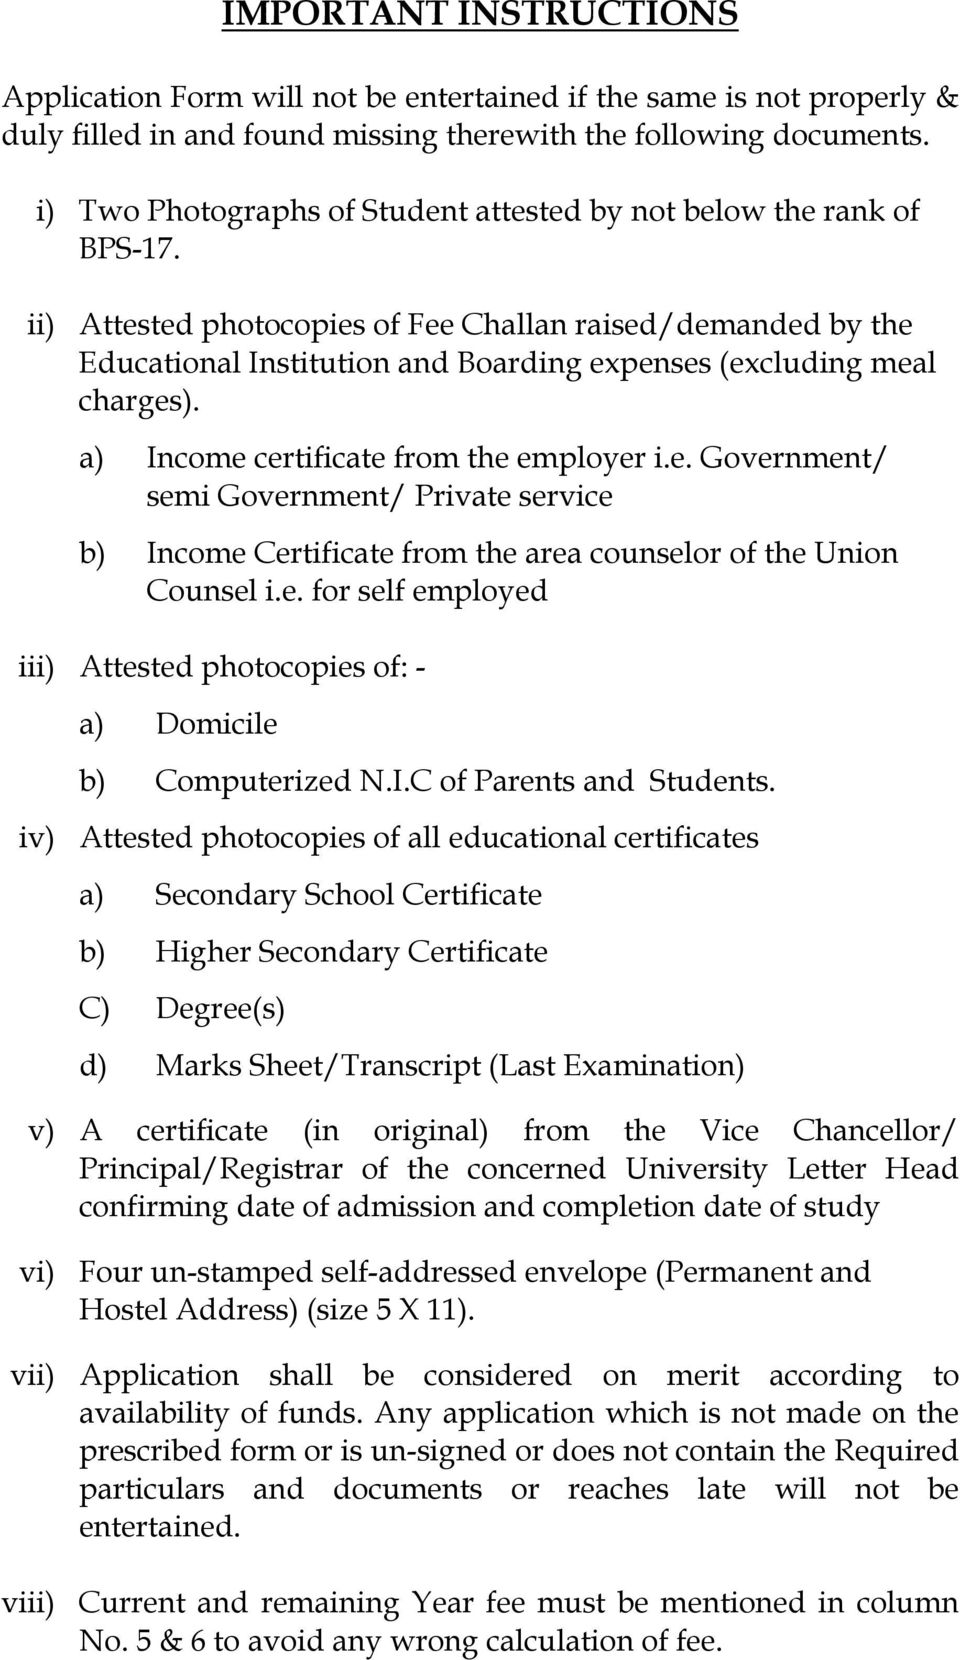 ii) Attested photocopies of Fee Challan raised/demanded by the Educational Institution and Boarding expenses (excluding meal charges). a) Income certificate from the employer i.e. Government/ semi Government/ Private service b) Income Certificate from the area counselor of the Union Counsel i.